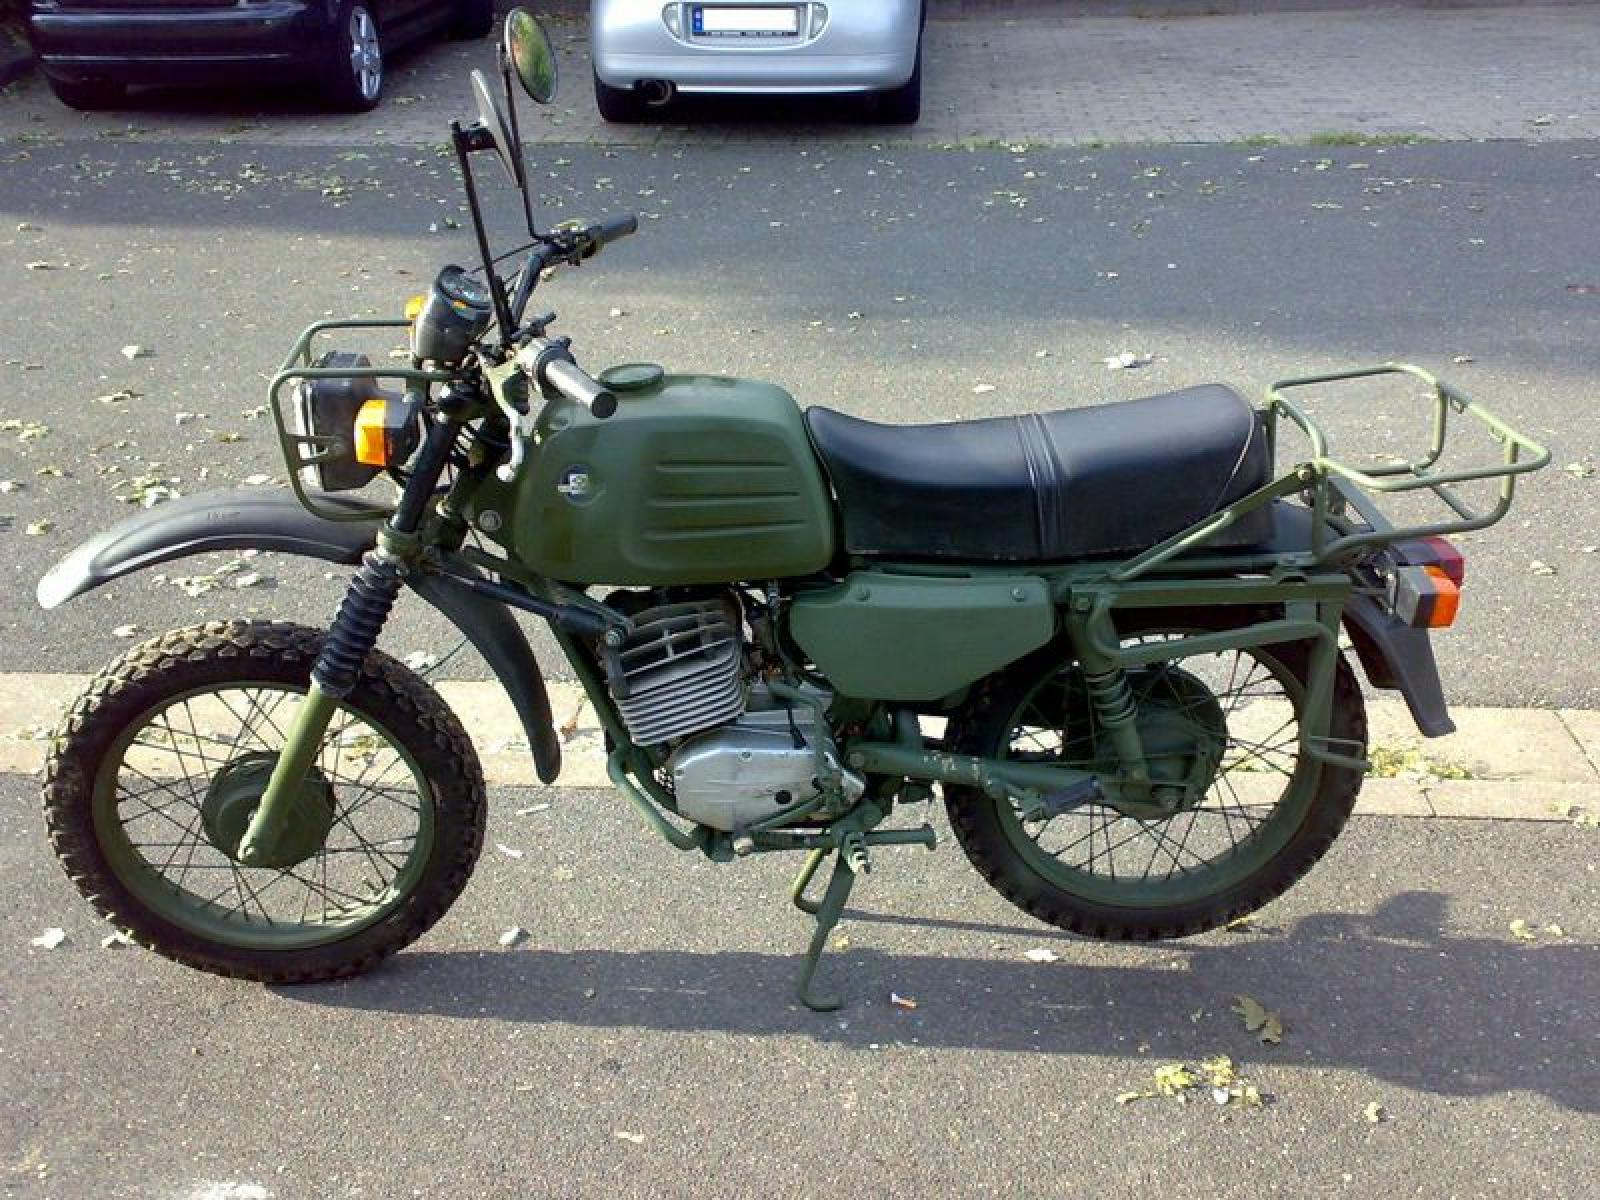 Hercules K 125 Military 1989 images #74682